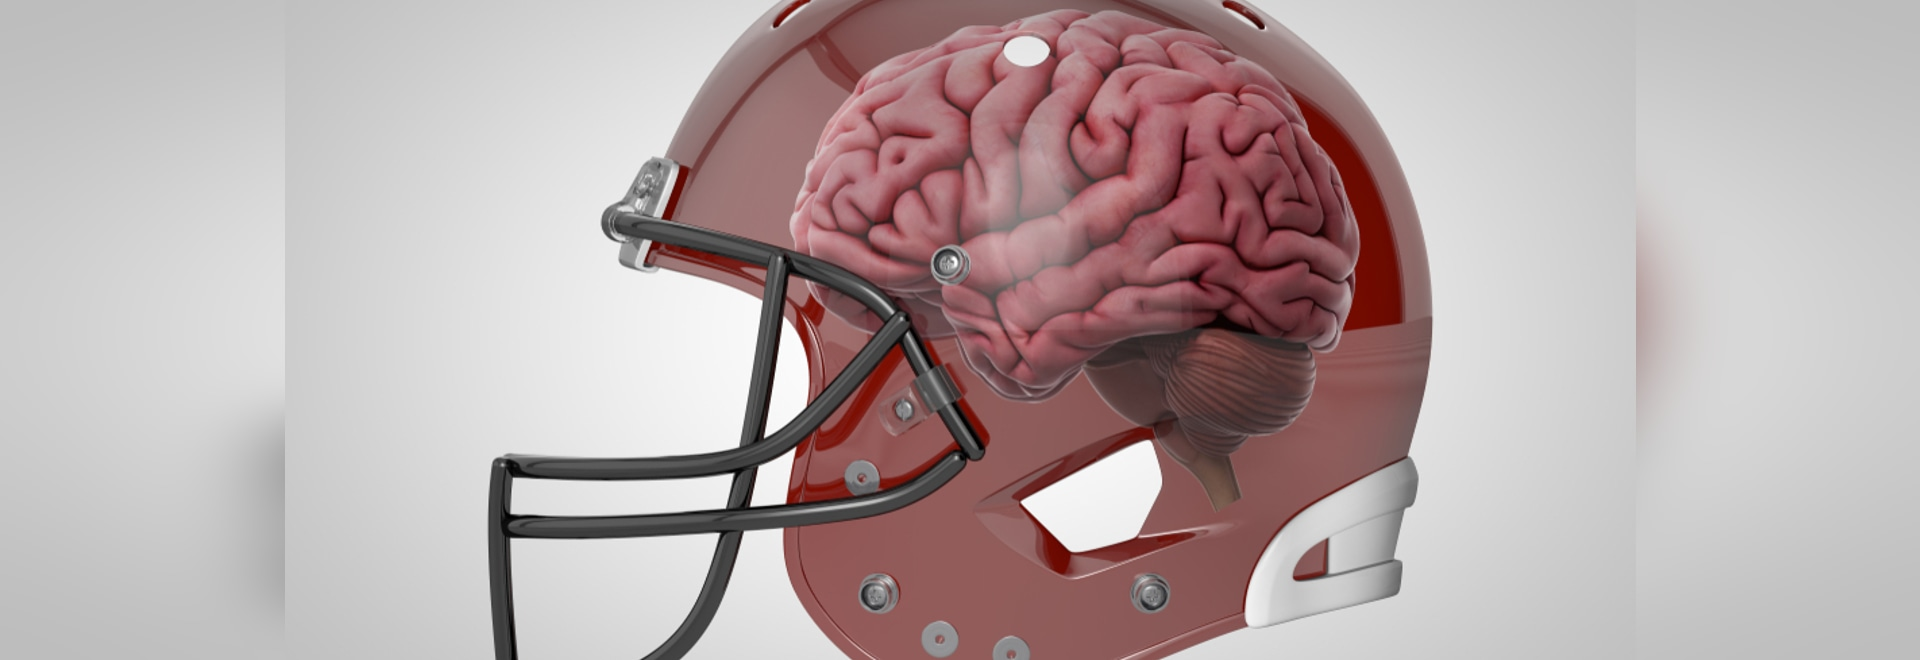 Researchers Identify Risk of CTE for NFL Players